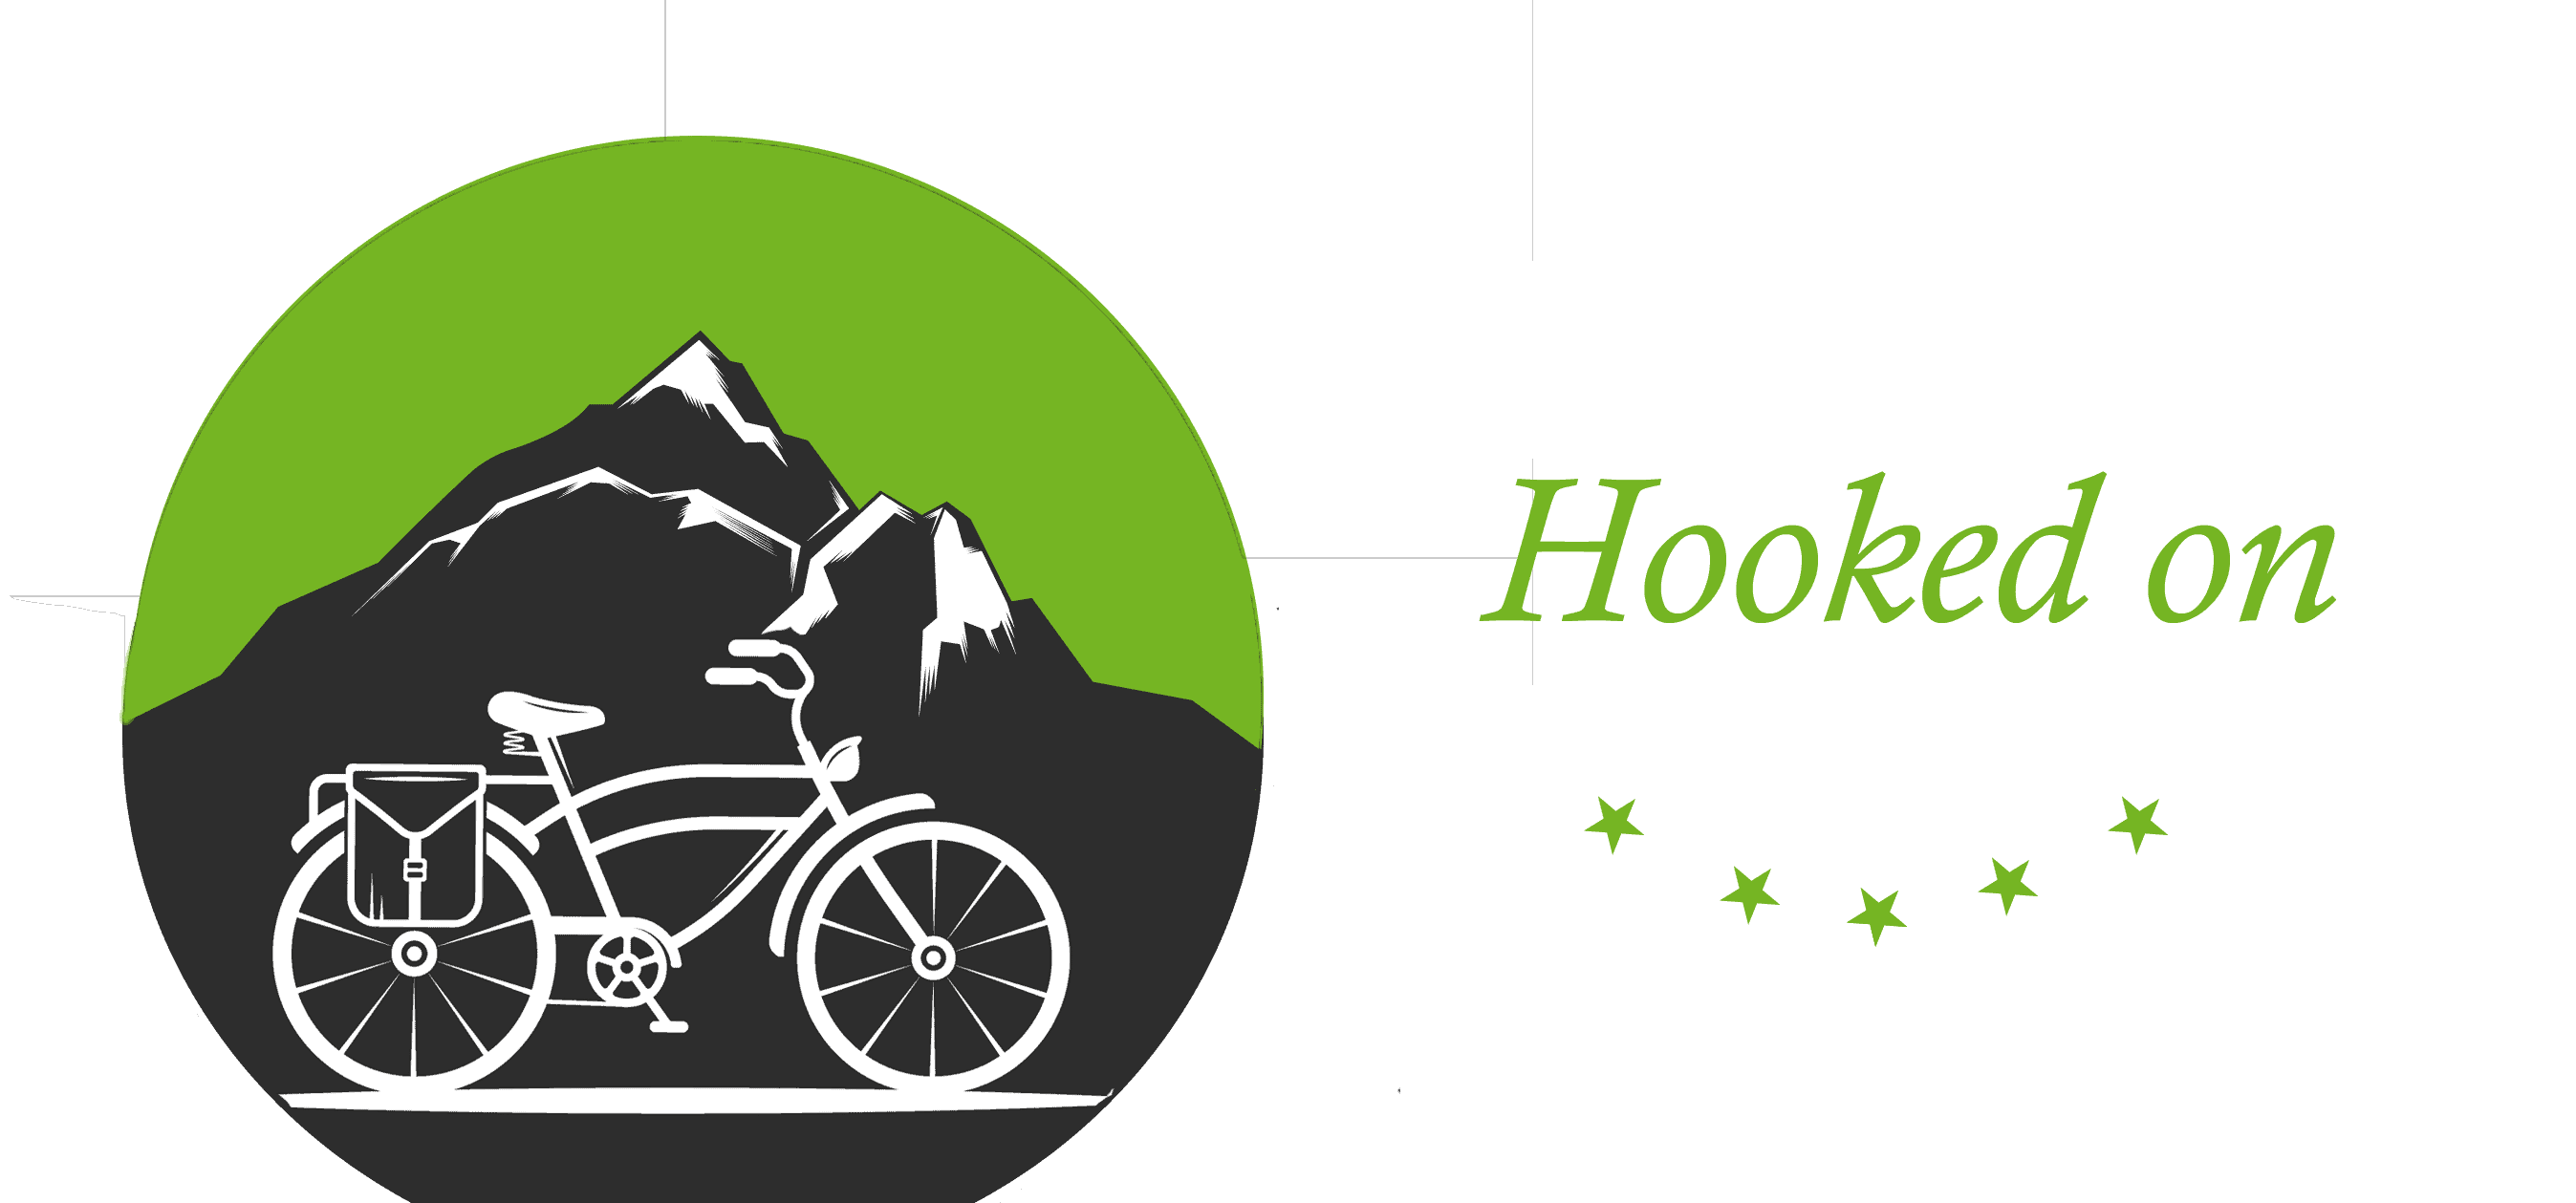 Hooked on Cycling and Walking